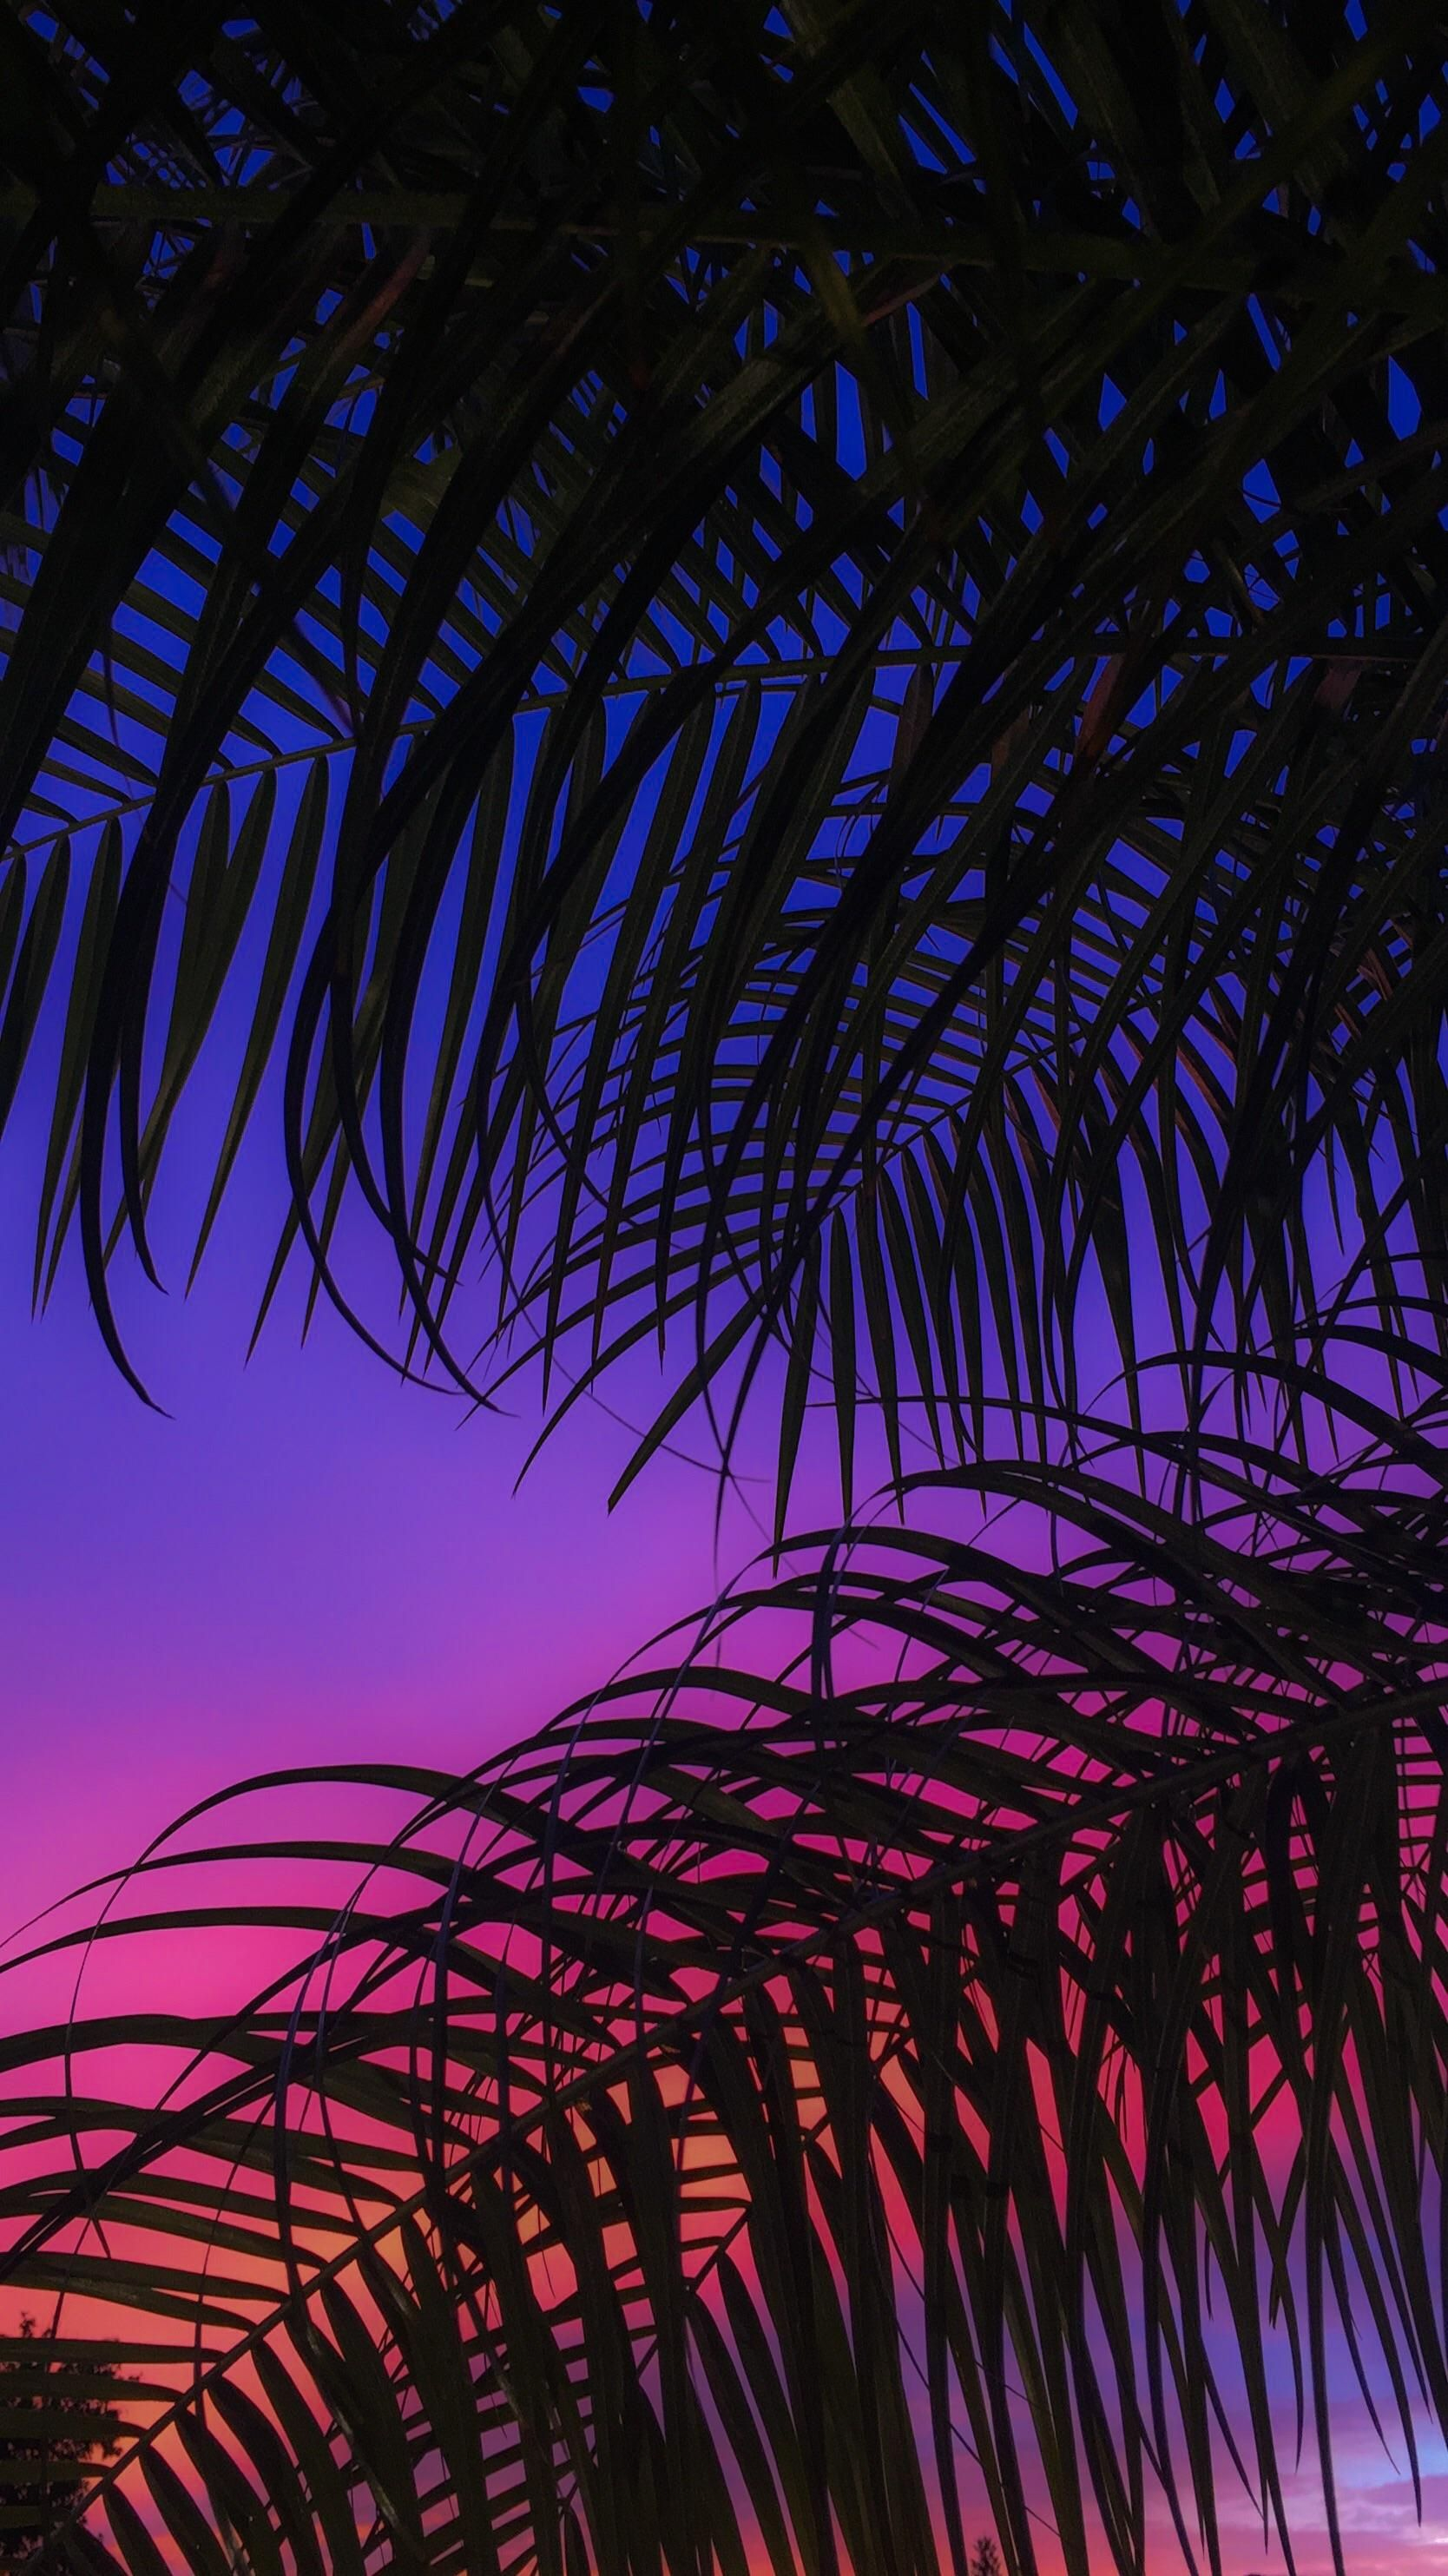 Sunset Palms Iphone Wallpaper Sky Aesthetic Wallpapers Sky Aesthetic